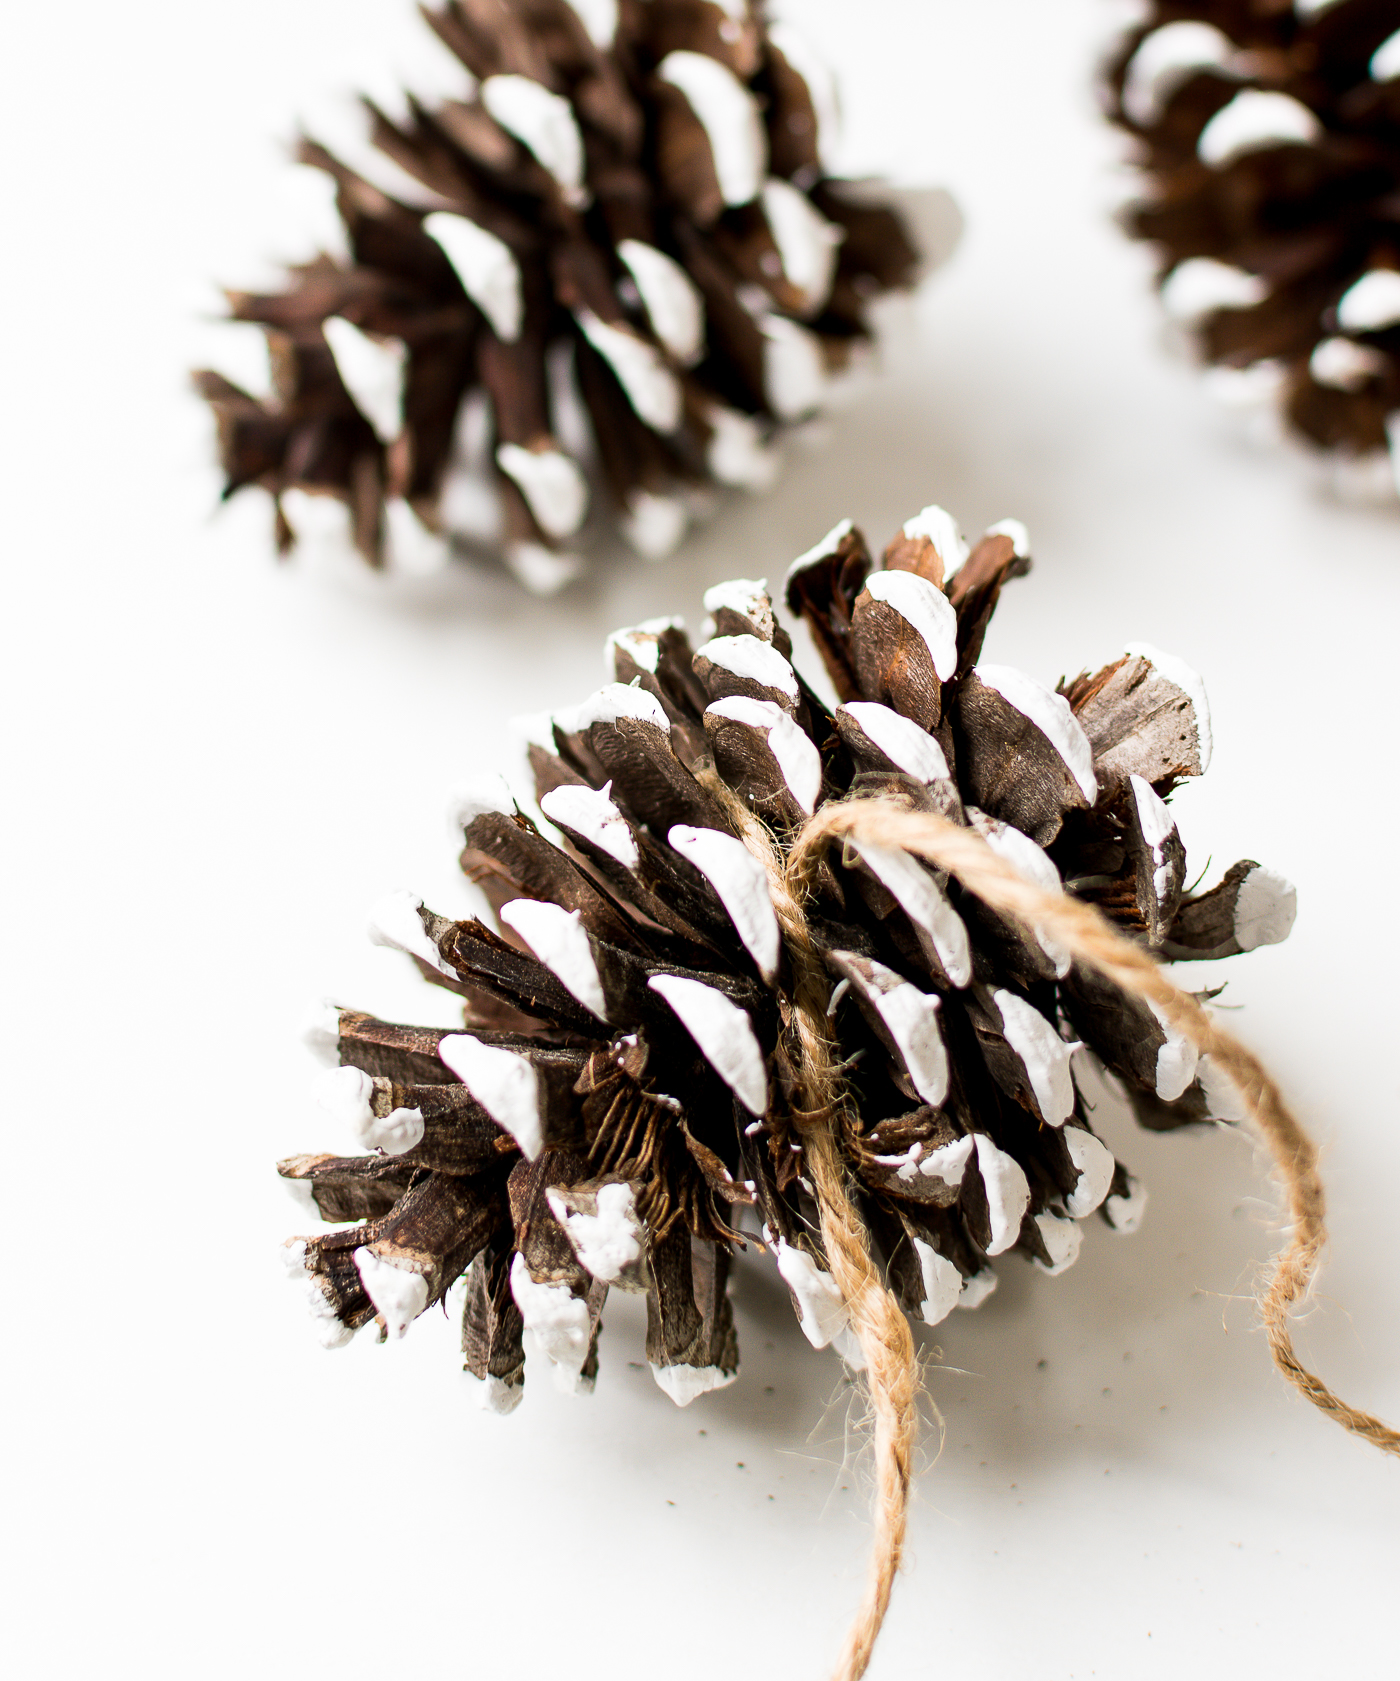 painted-pine-cones-how-to-paint-itallstartedwithpaint-com-7-1